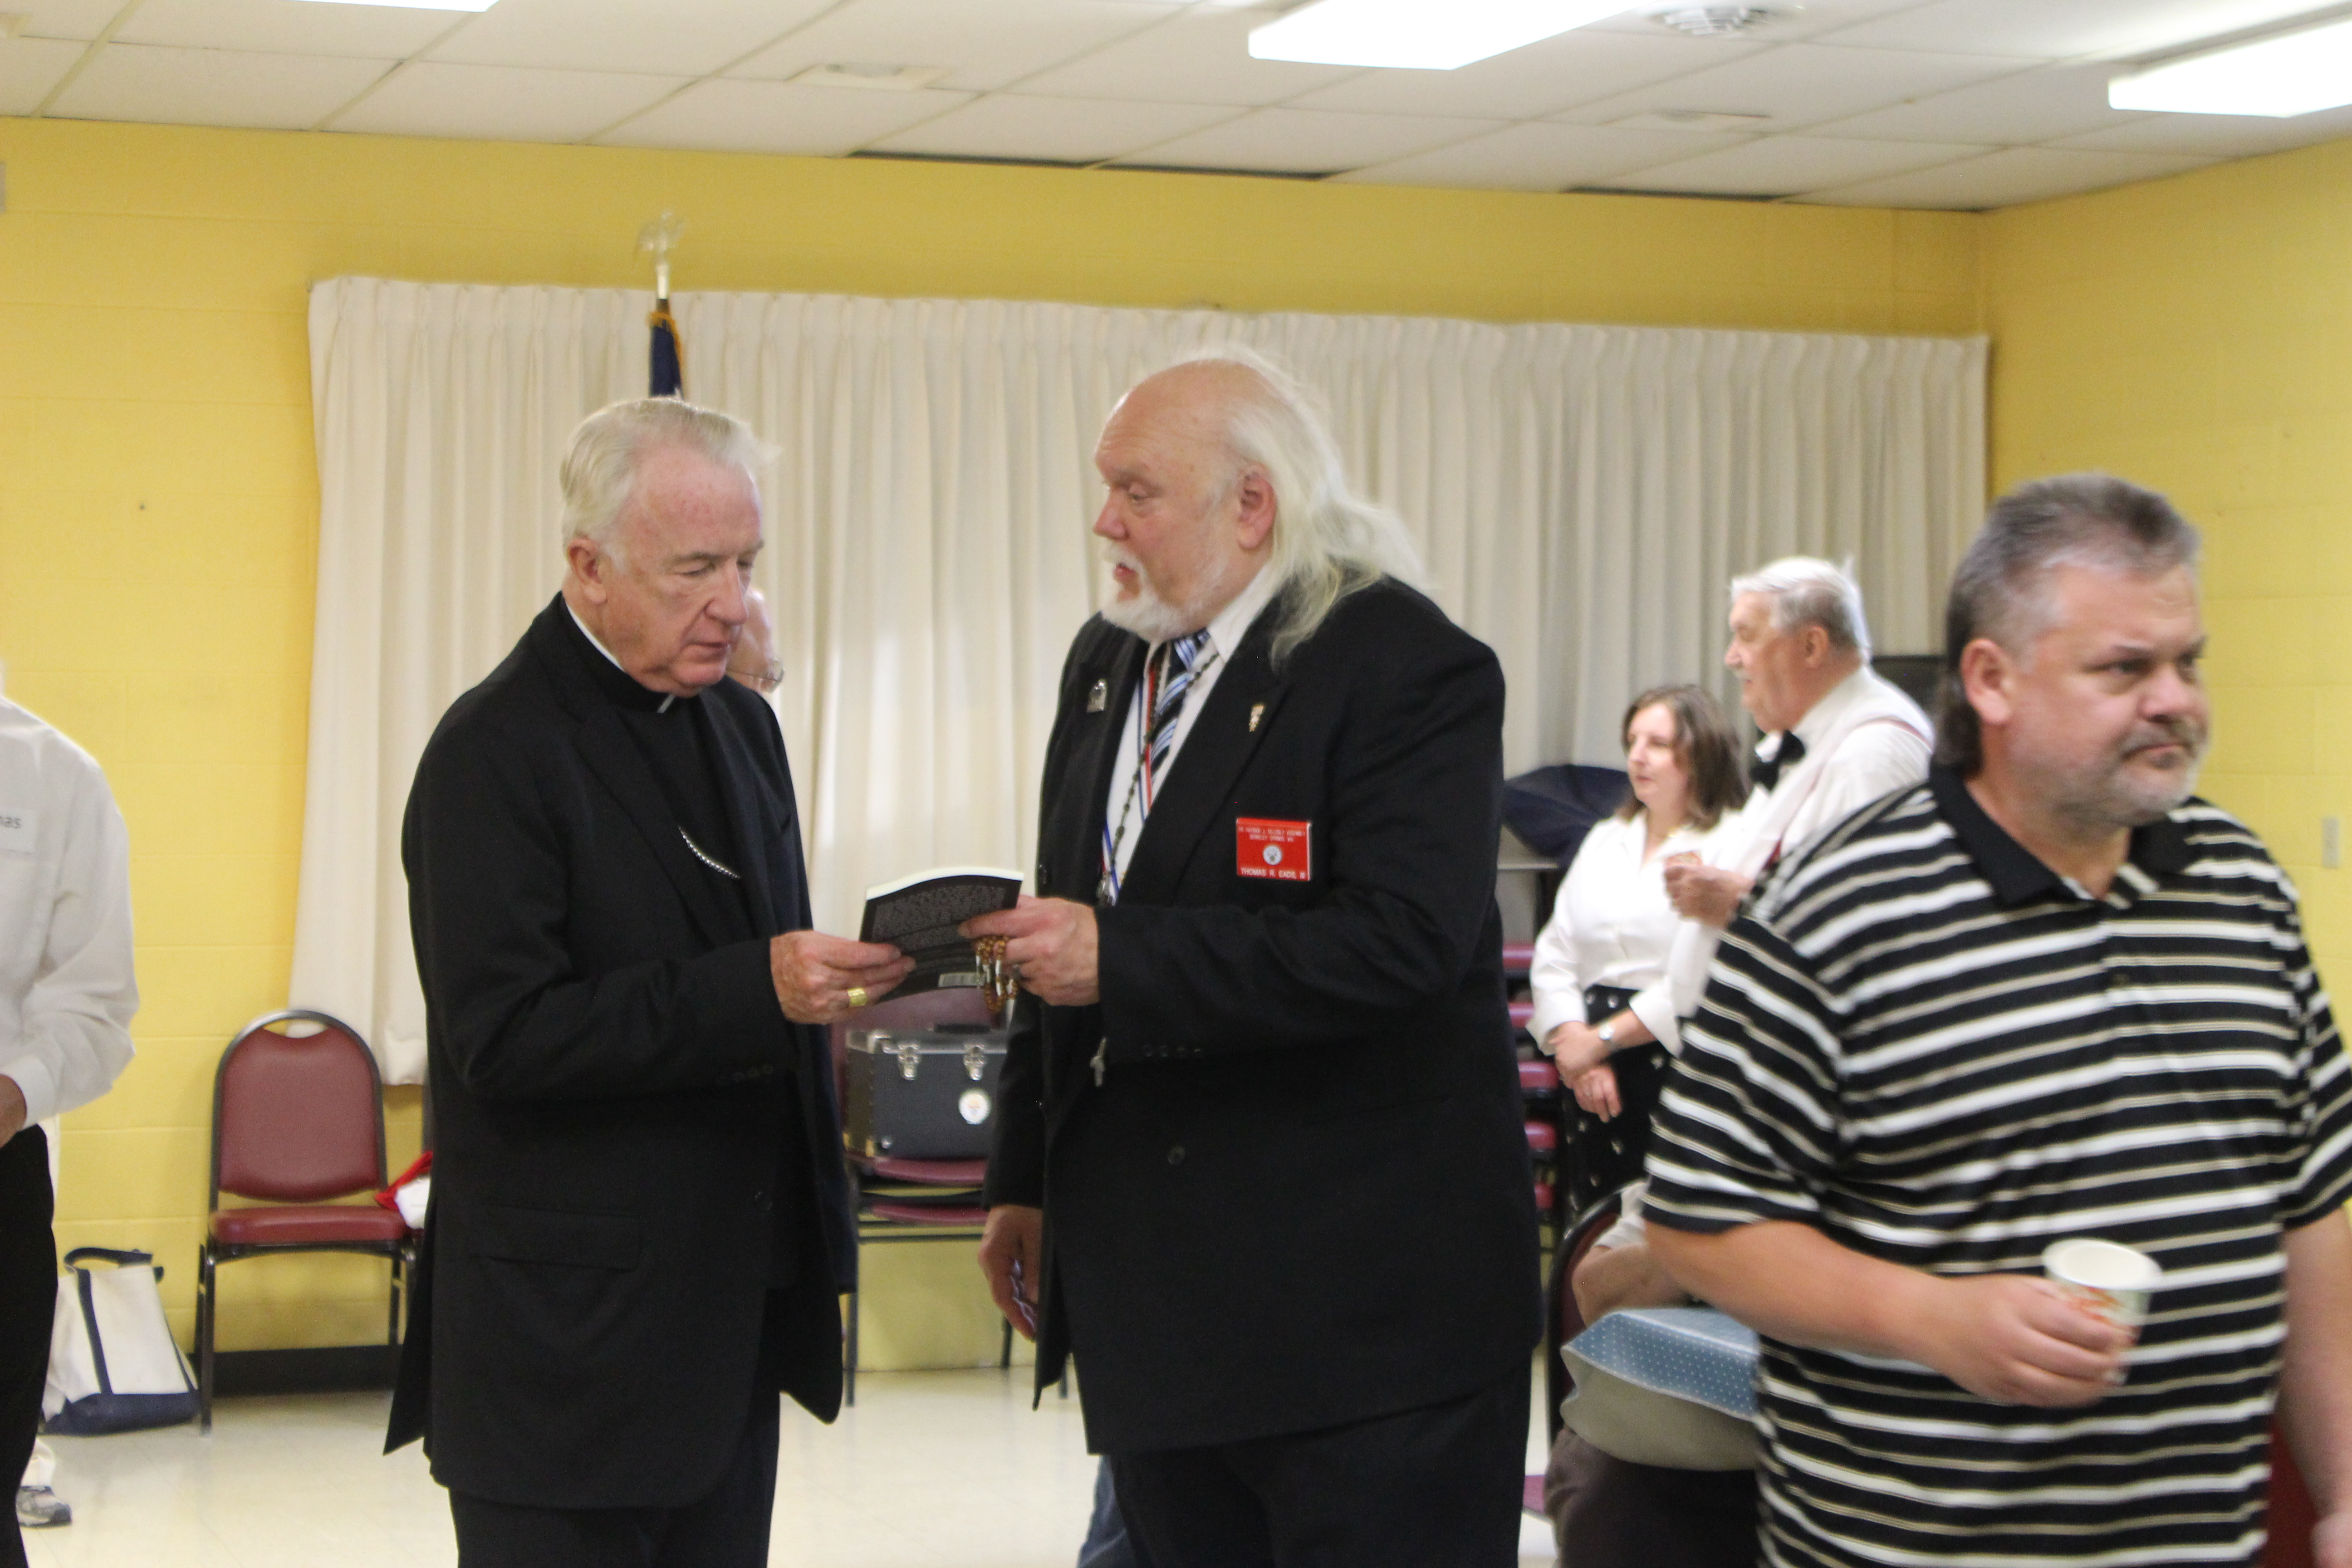 Presenting My book To Bishop Bransfield.JPG